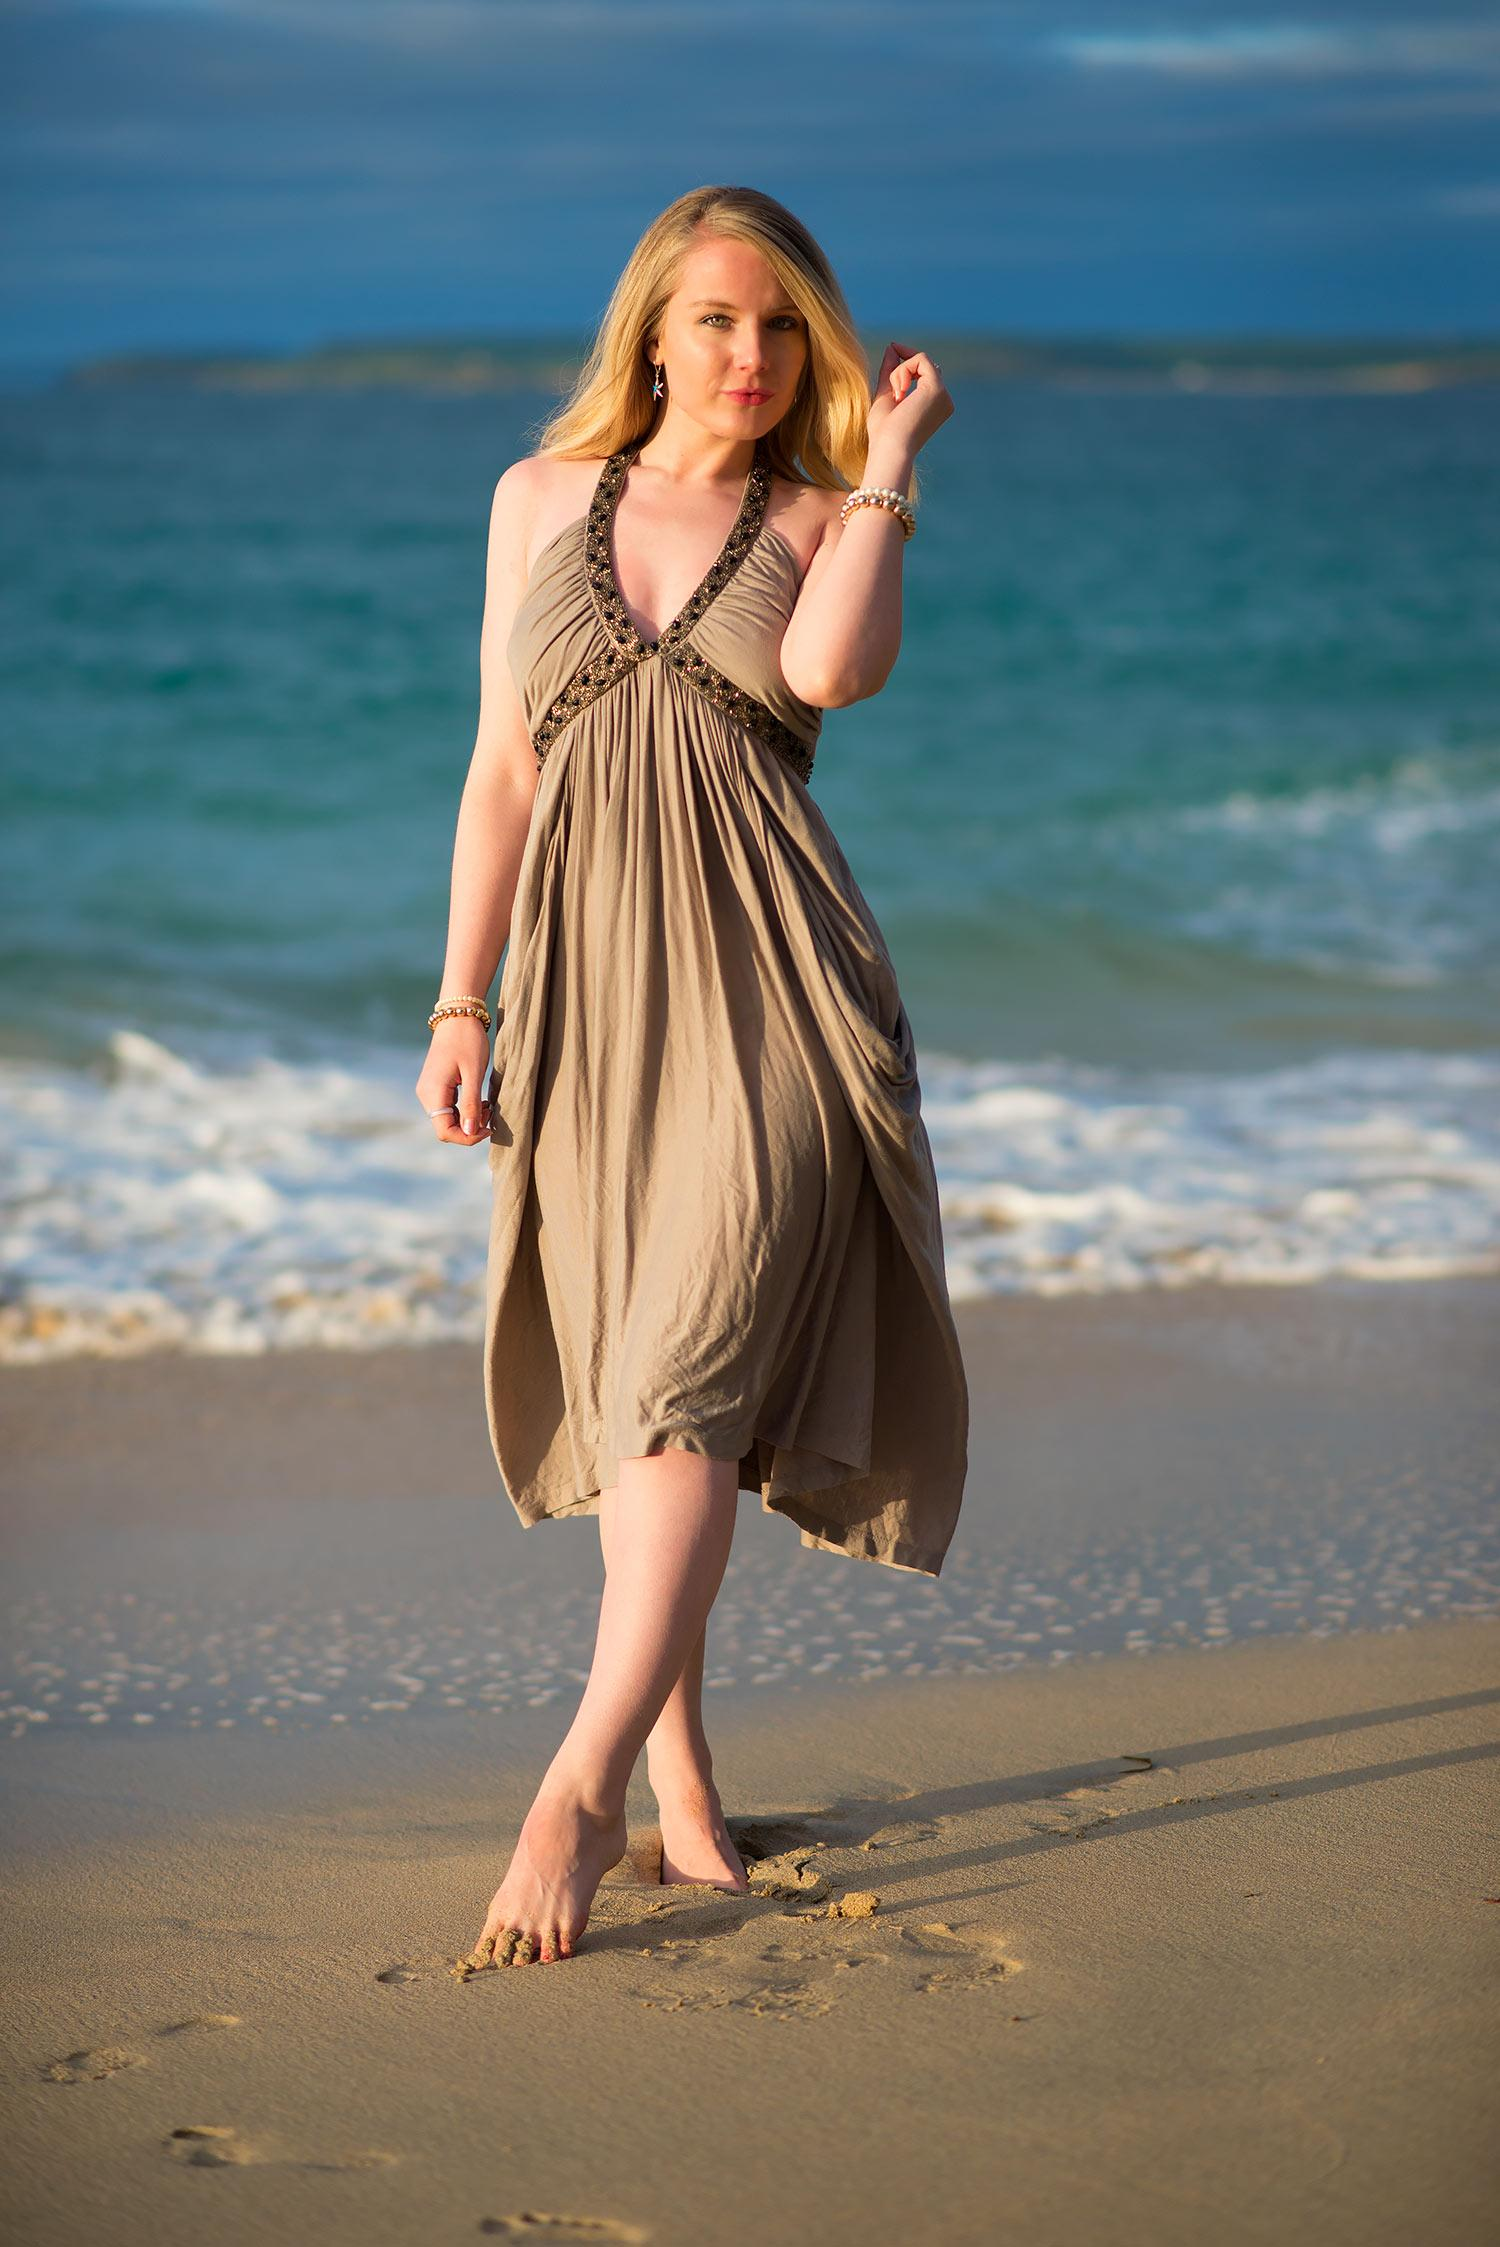 beaded grecian dress on beach photo shoot